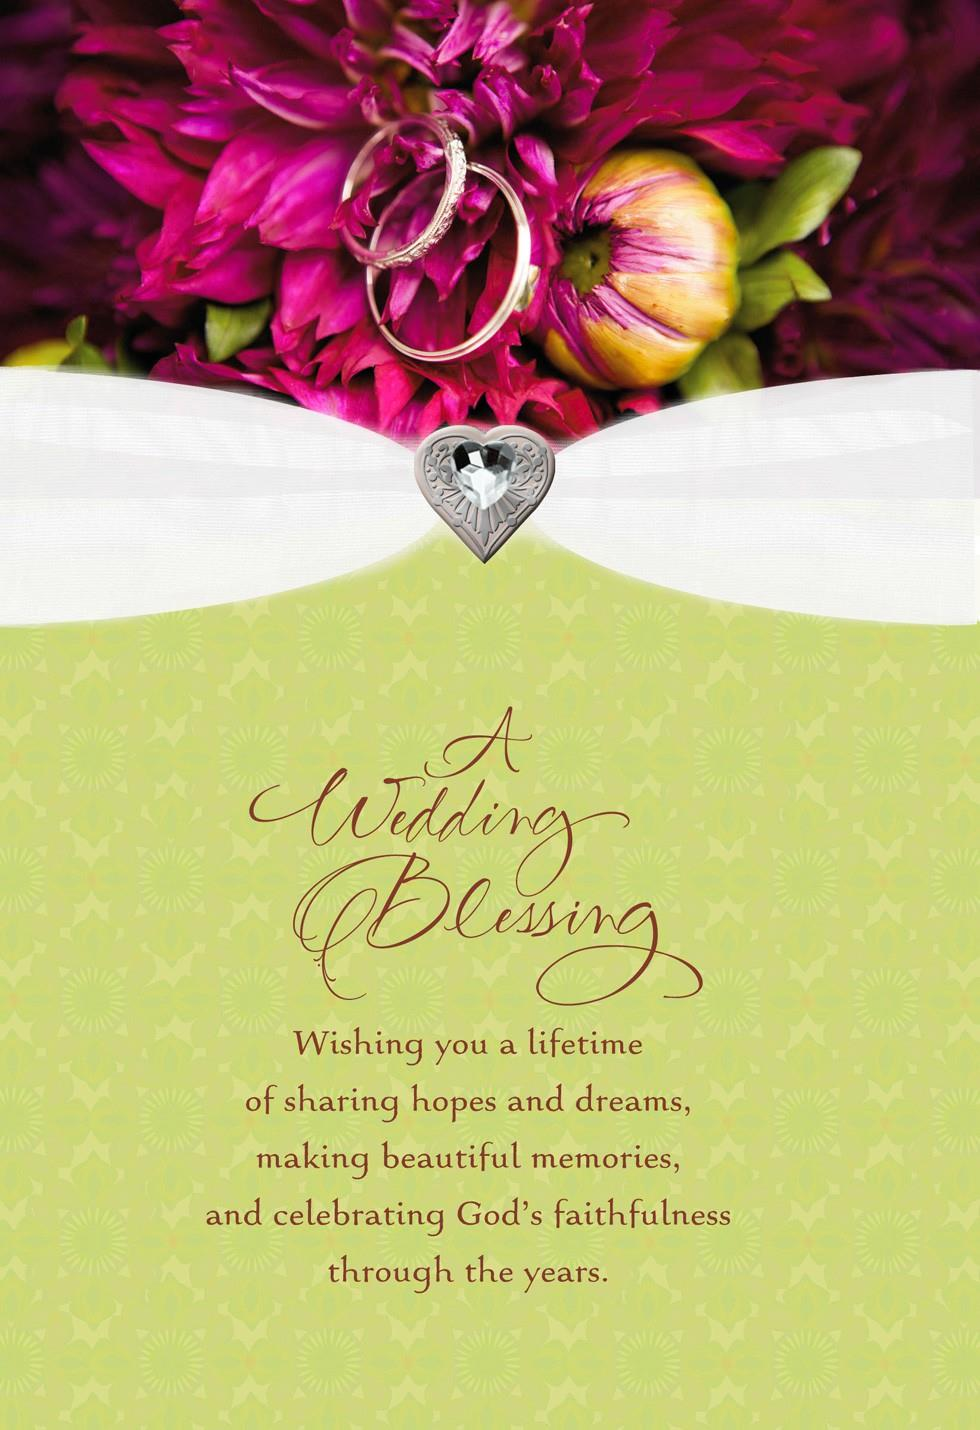 Wedding Blessing Religious Wedding Card Greeting Cards